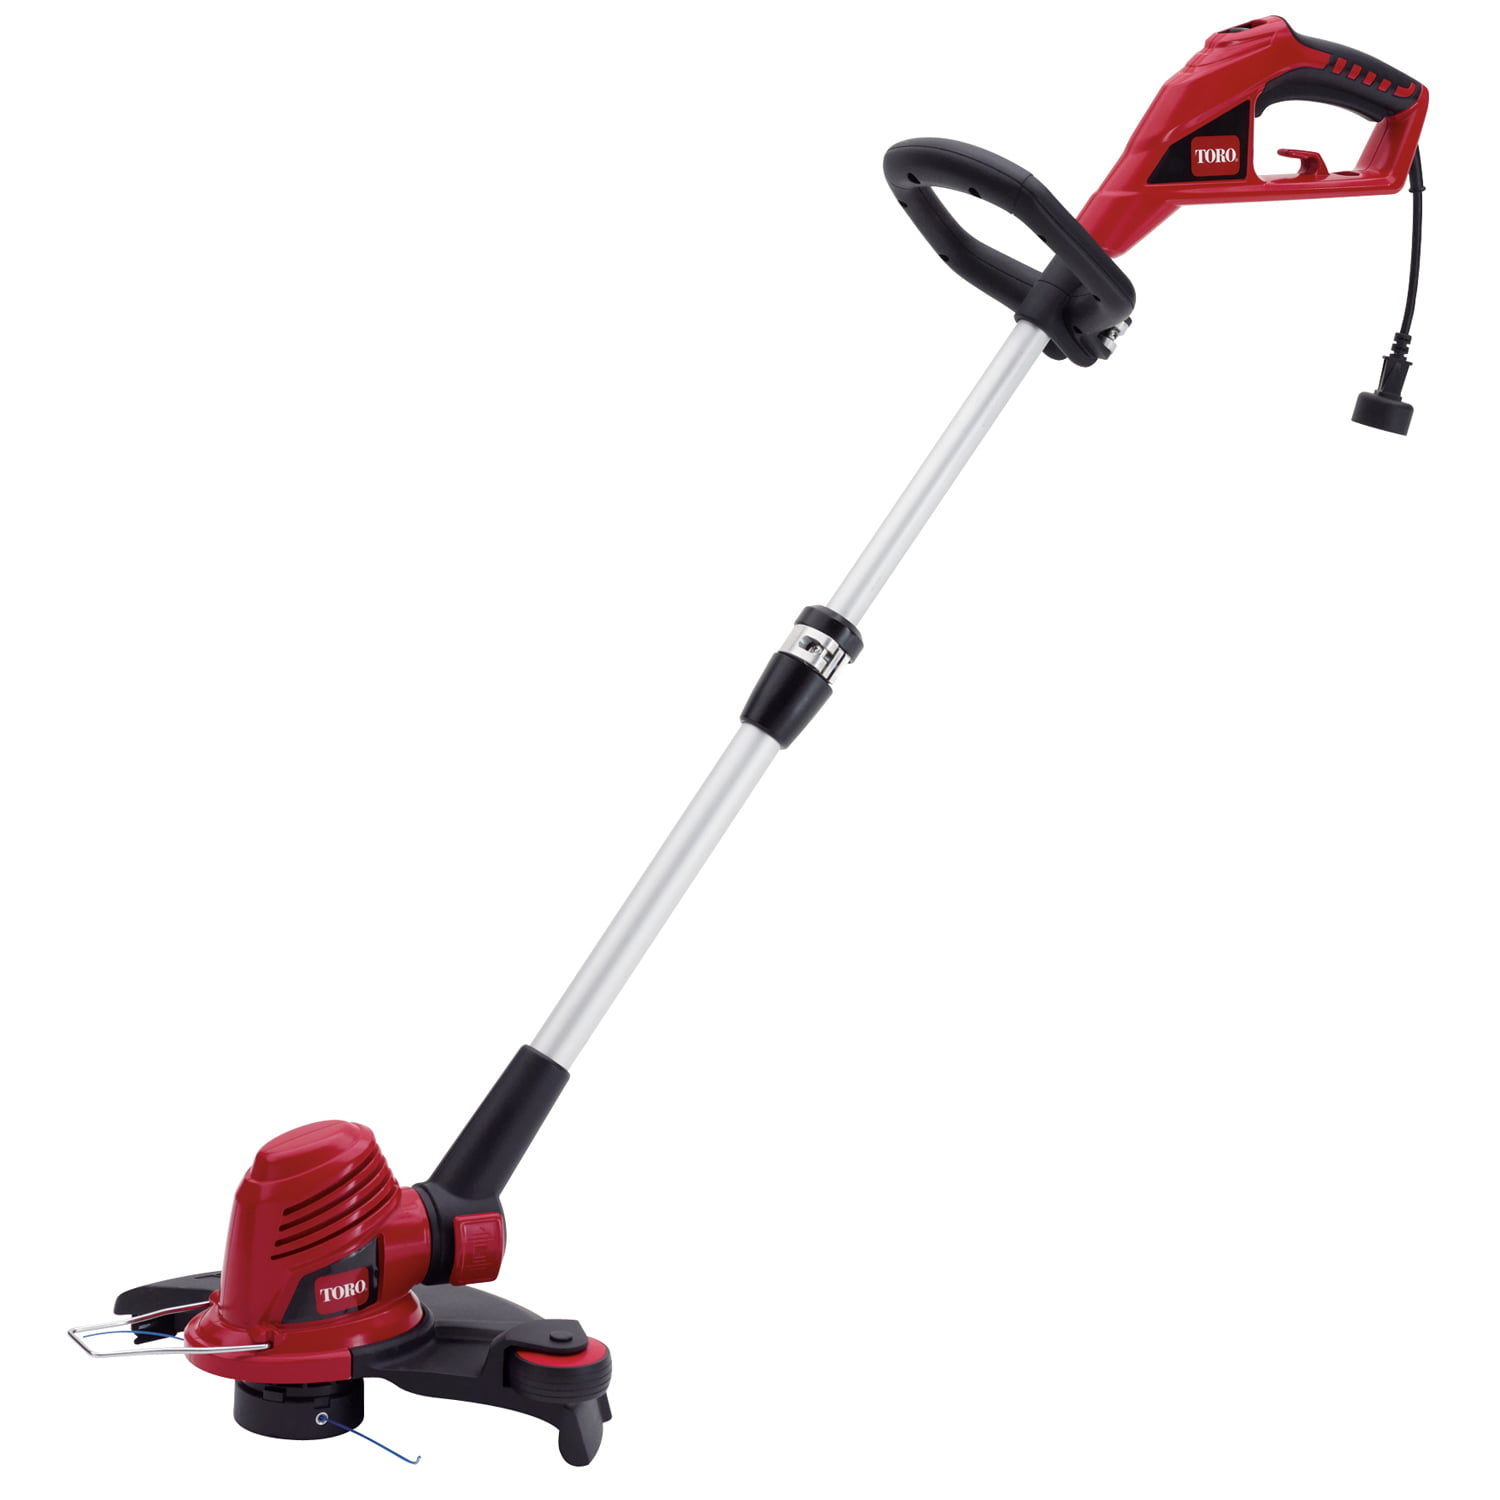 Toro 12 Electric Trimmer Toro 51480A 14&q...